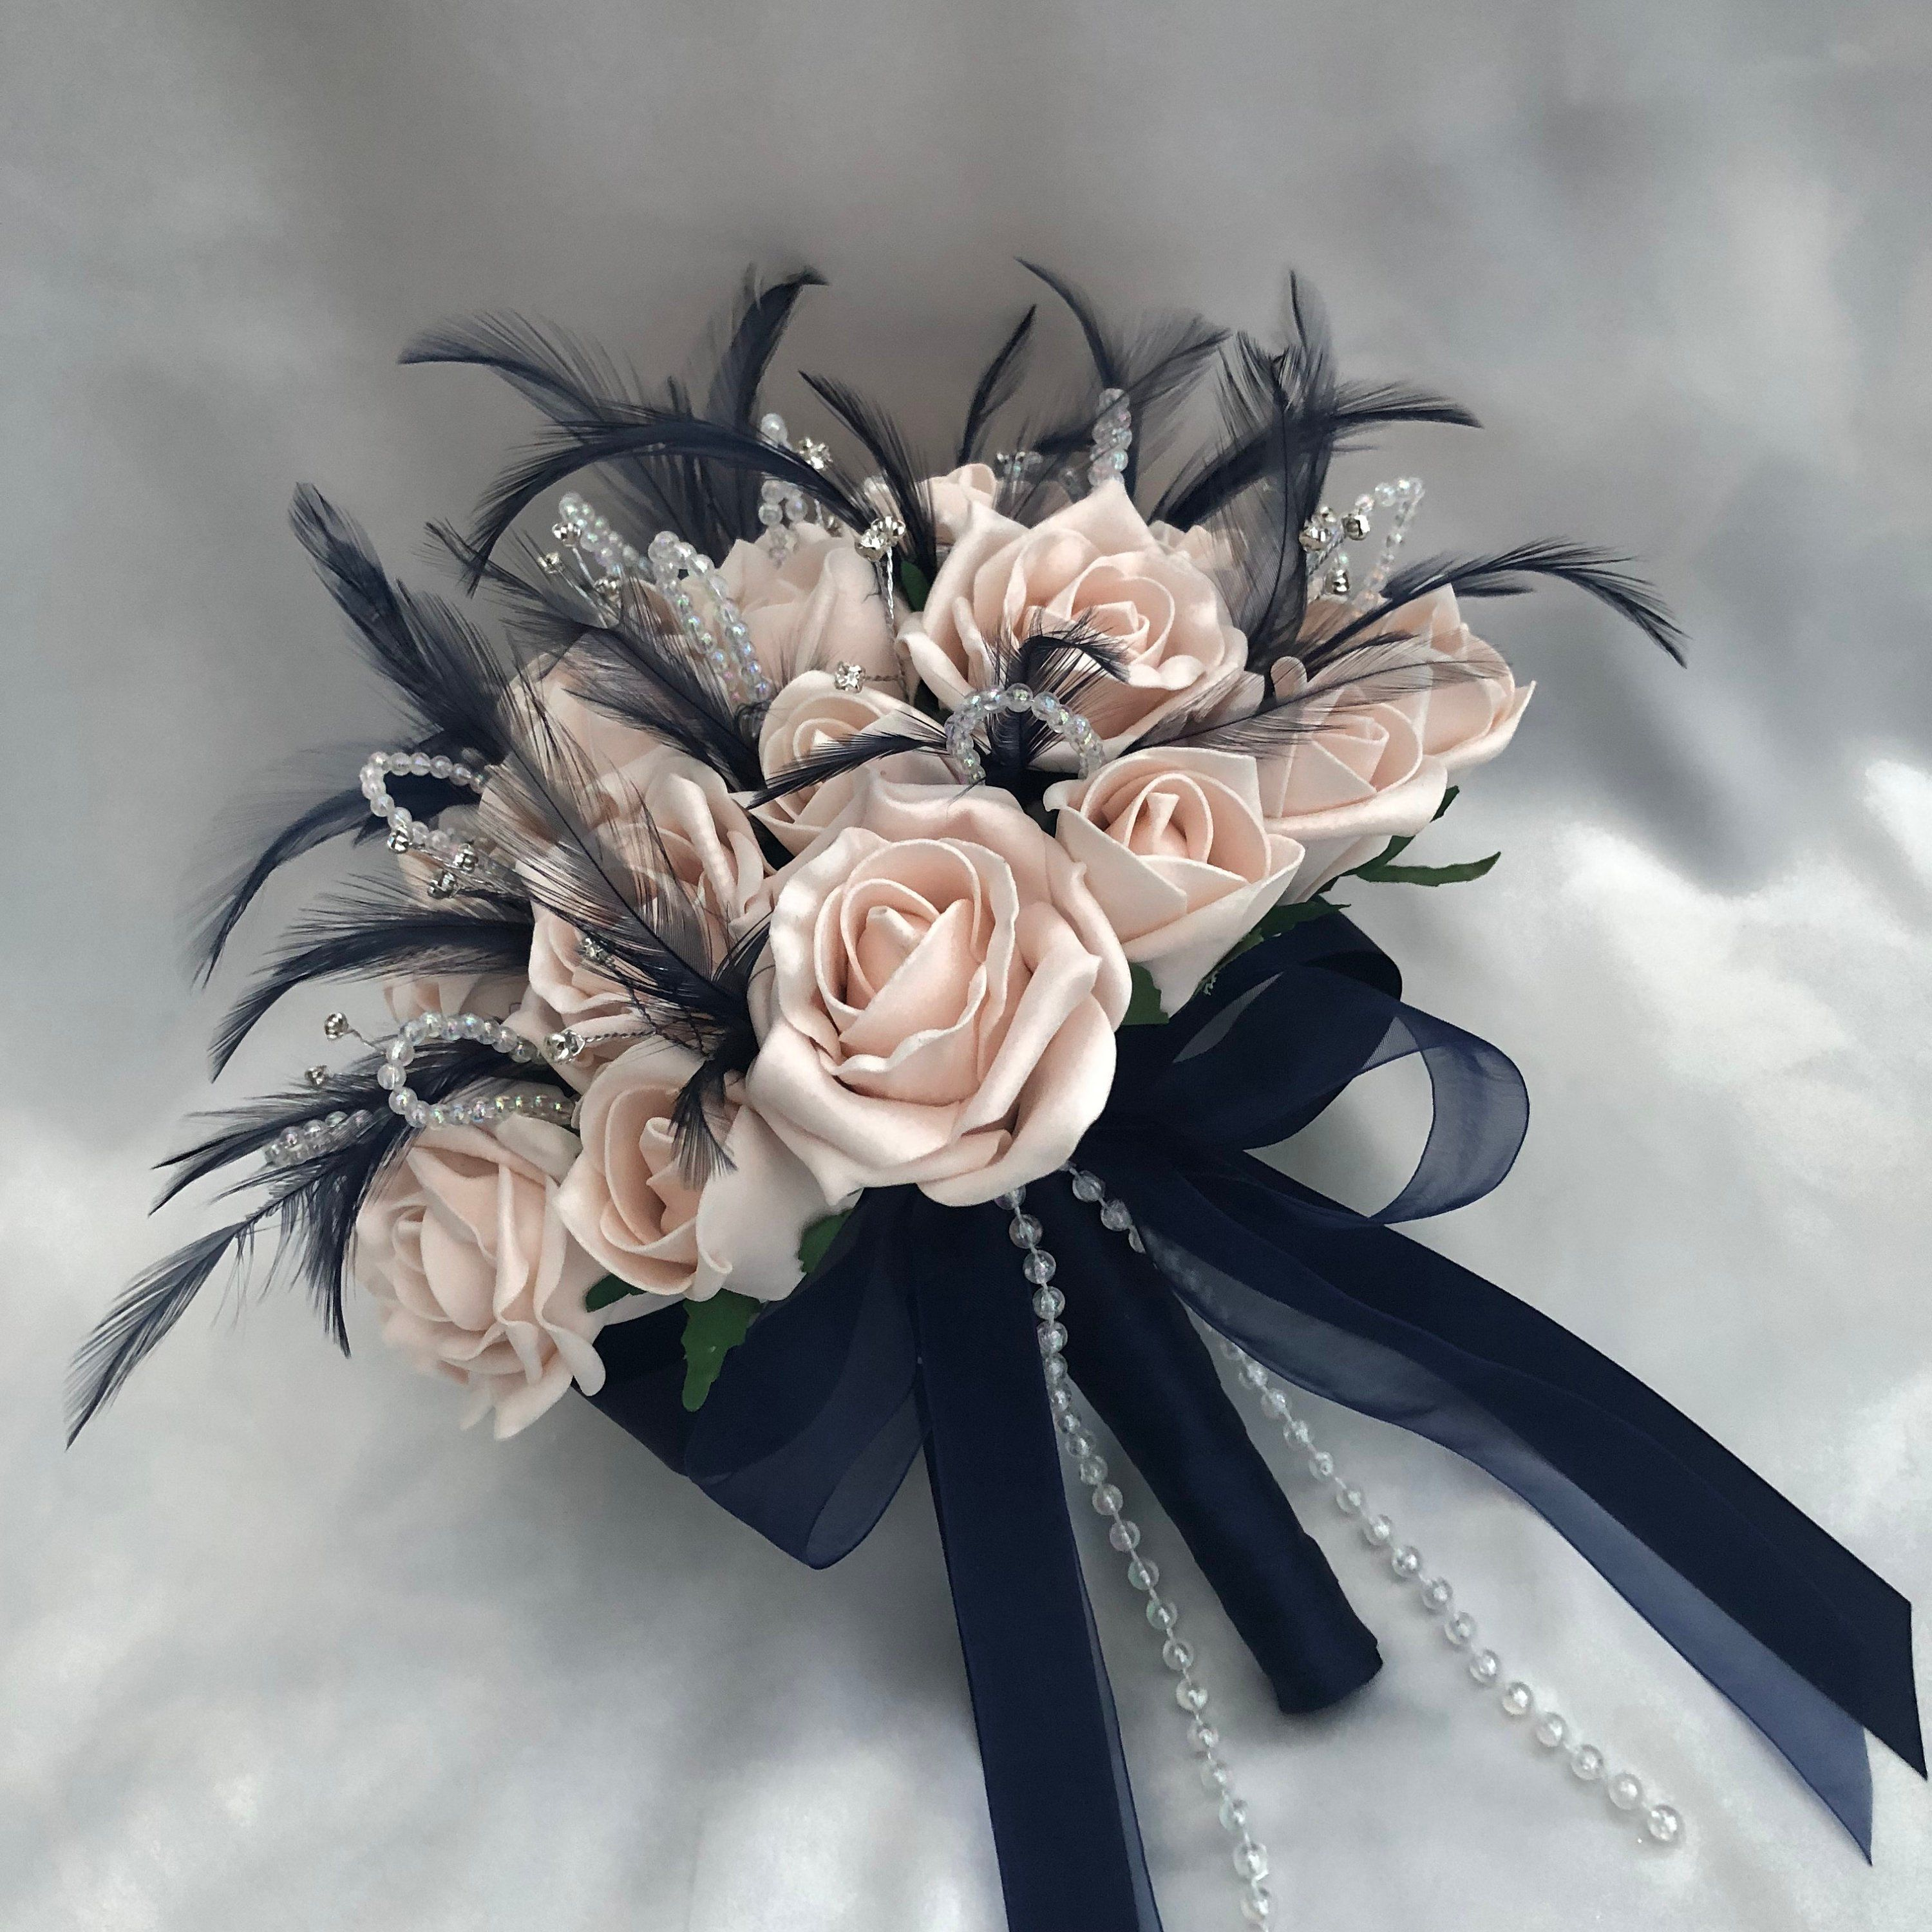 Artificial Wedding Flowers Brides Bridesmaids Posy Bouquet With